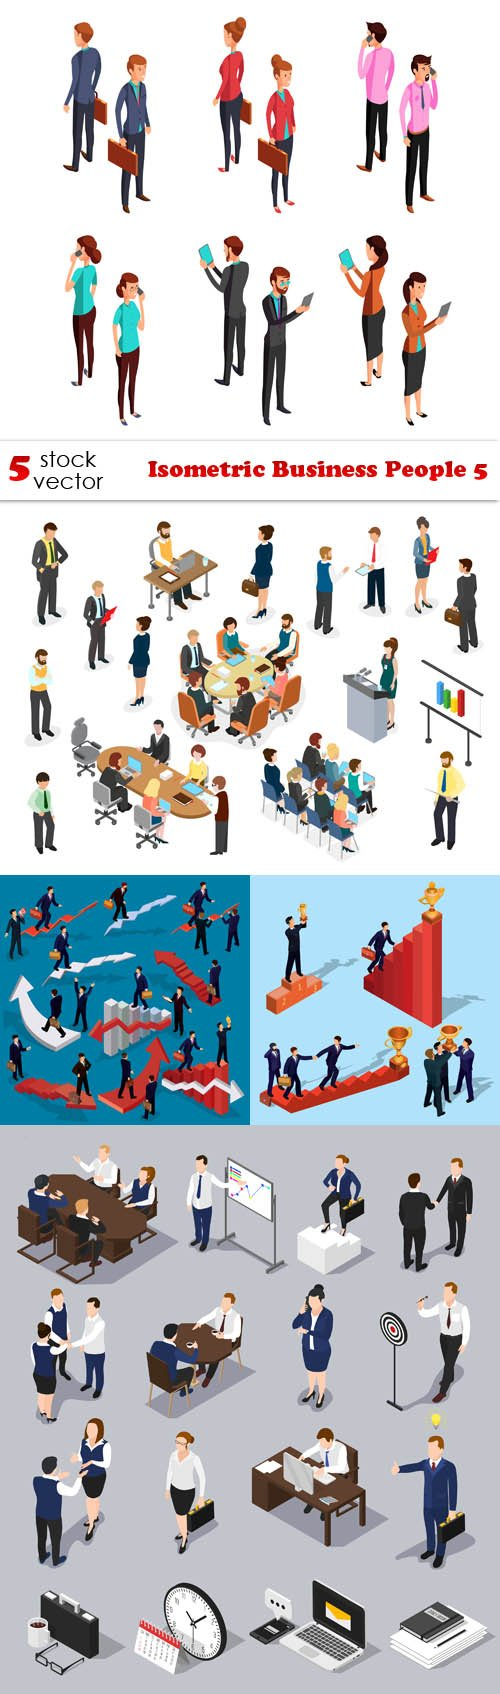 Vectors - Isometric Business People 5